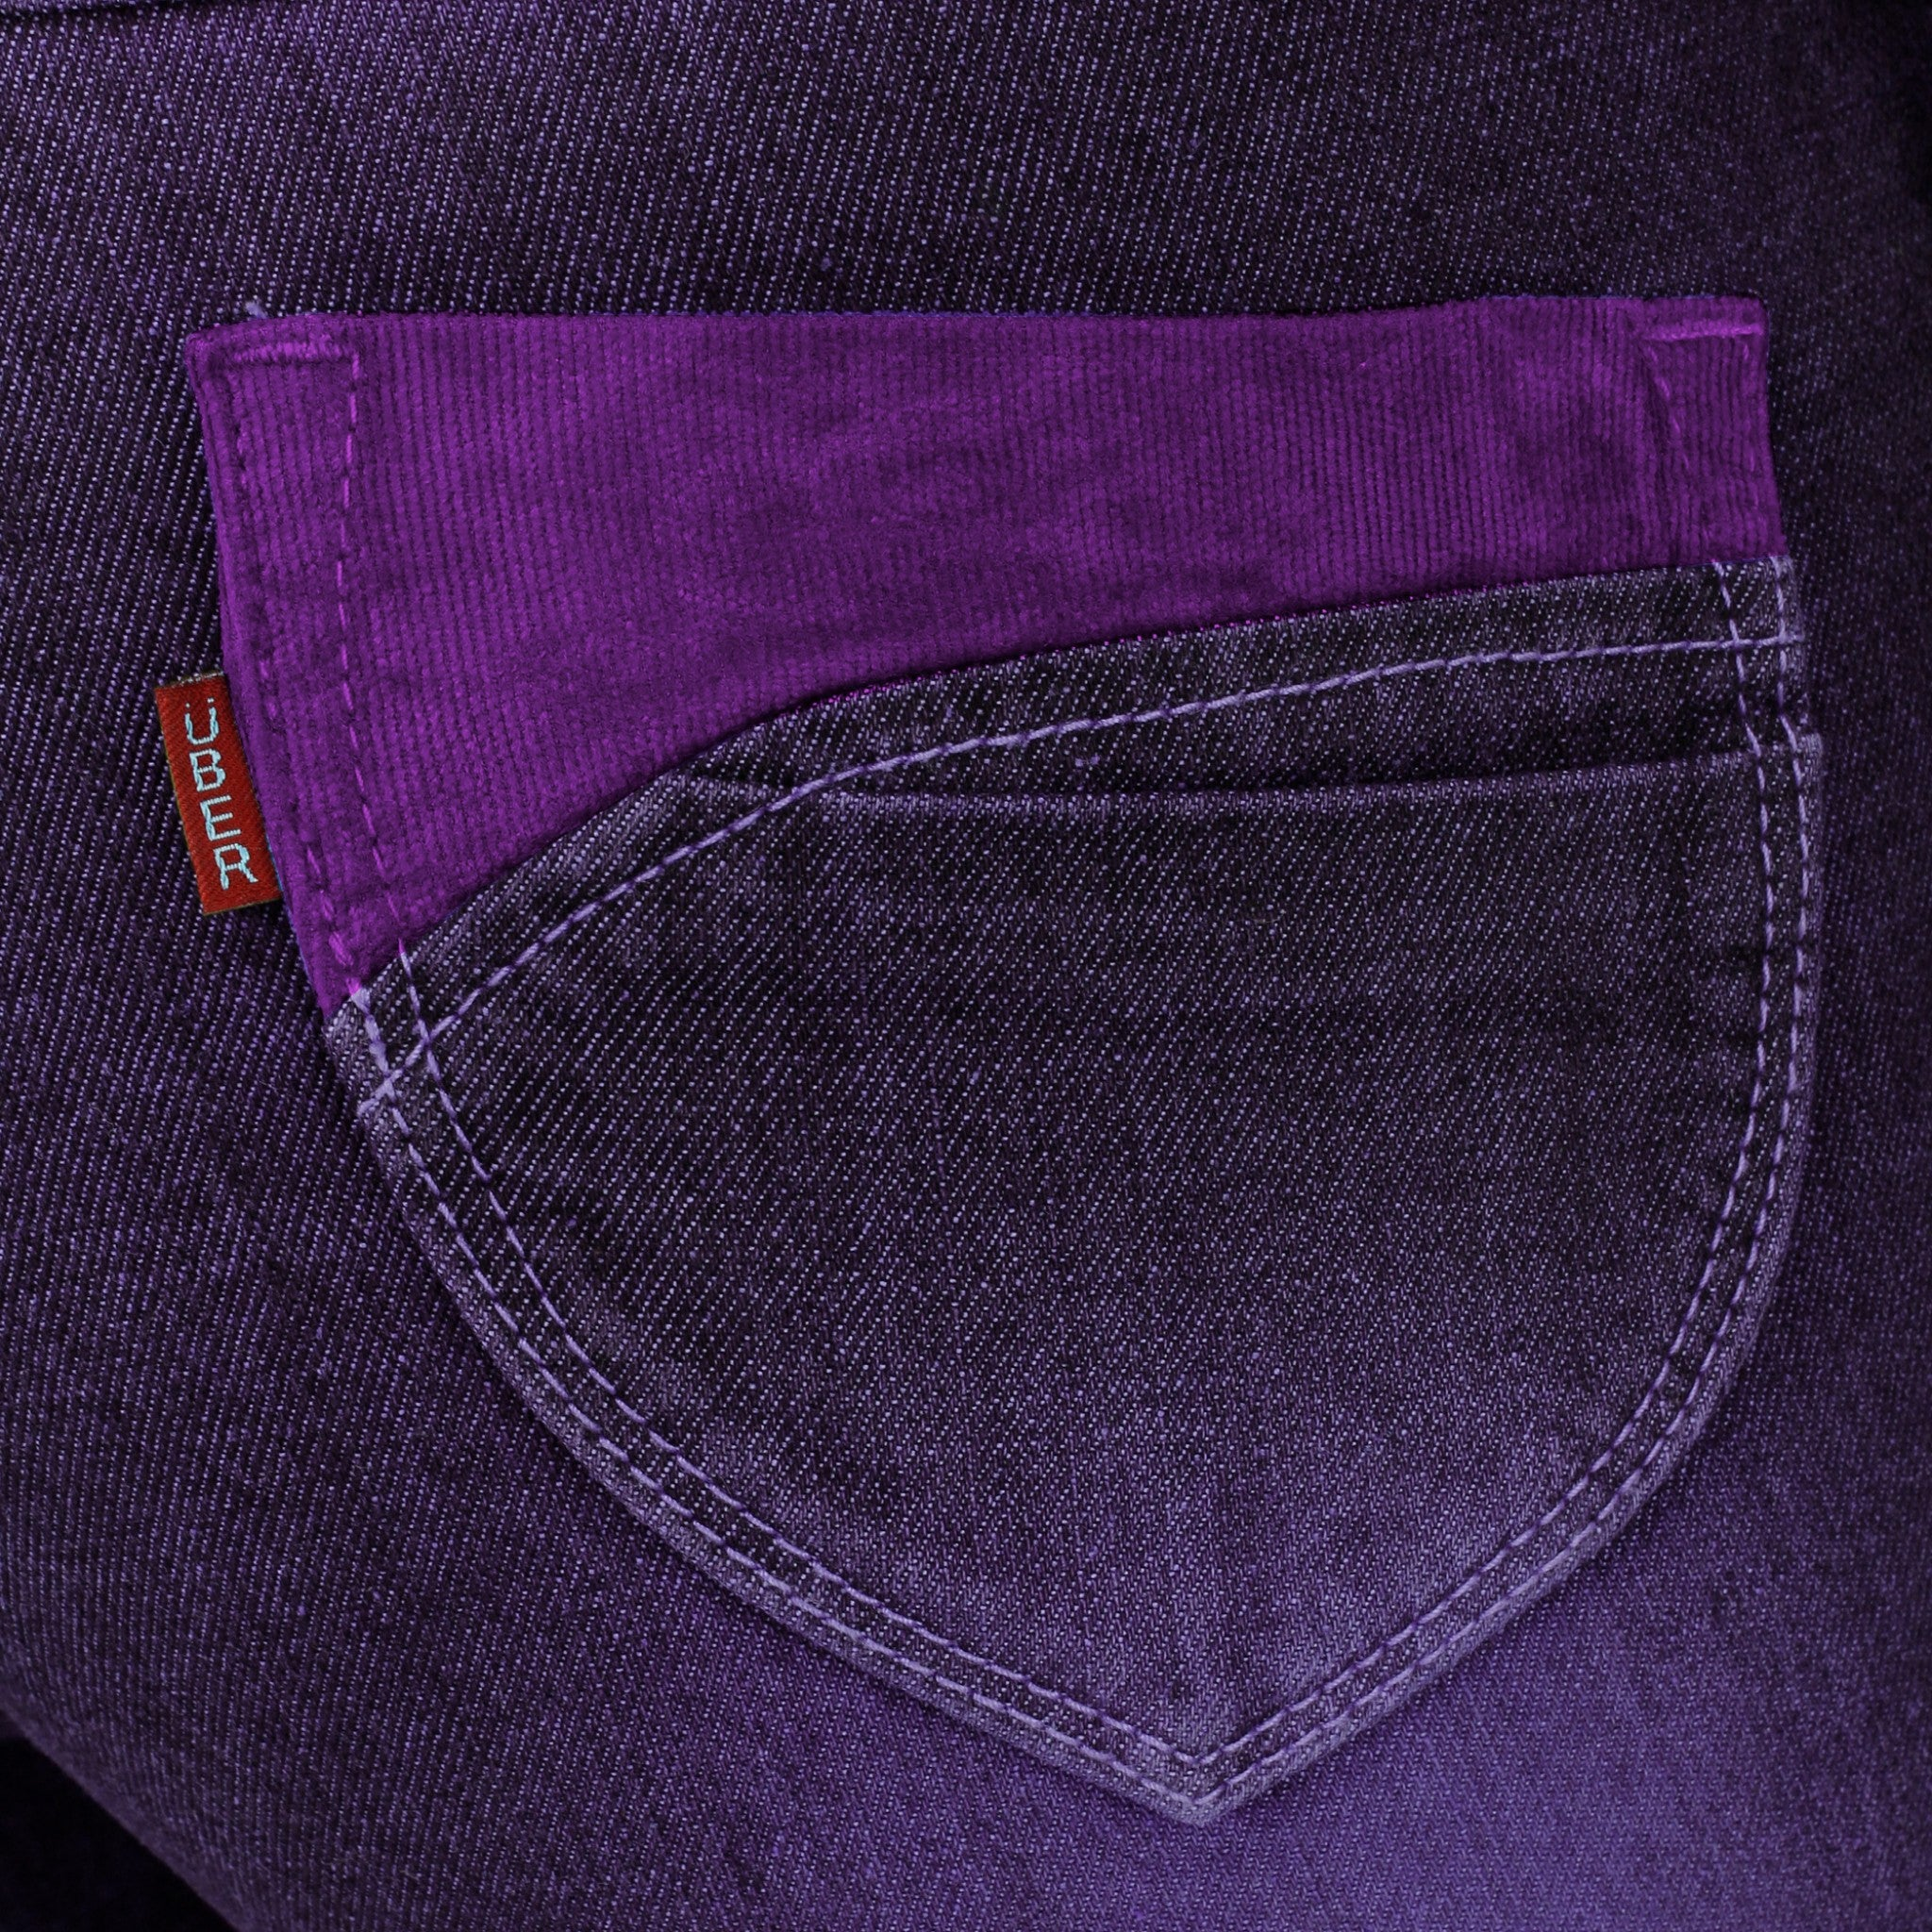 Magenta Denim Capri close up view of pocket